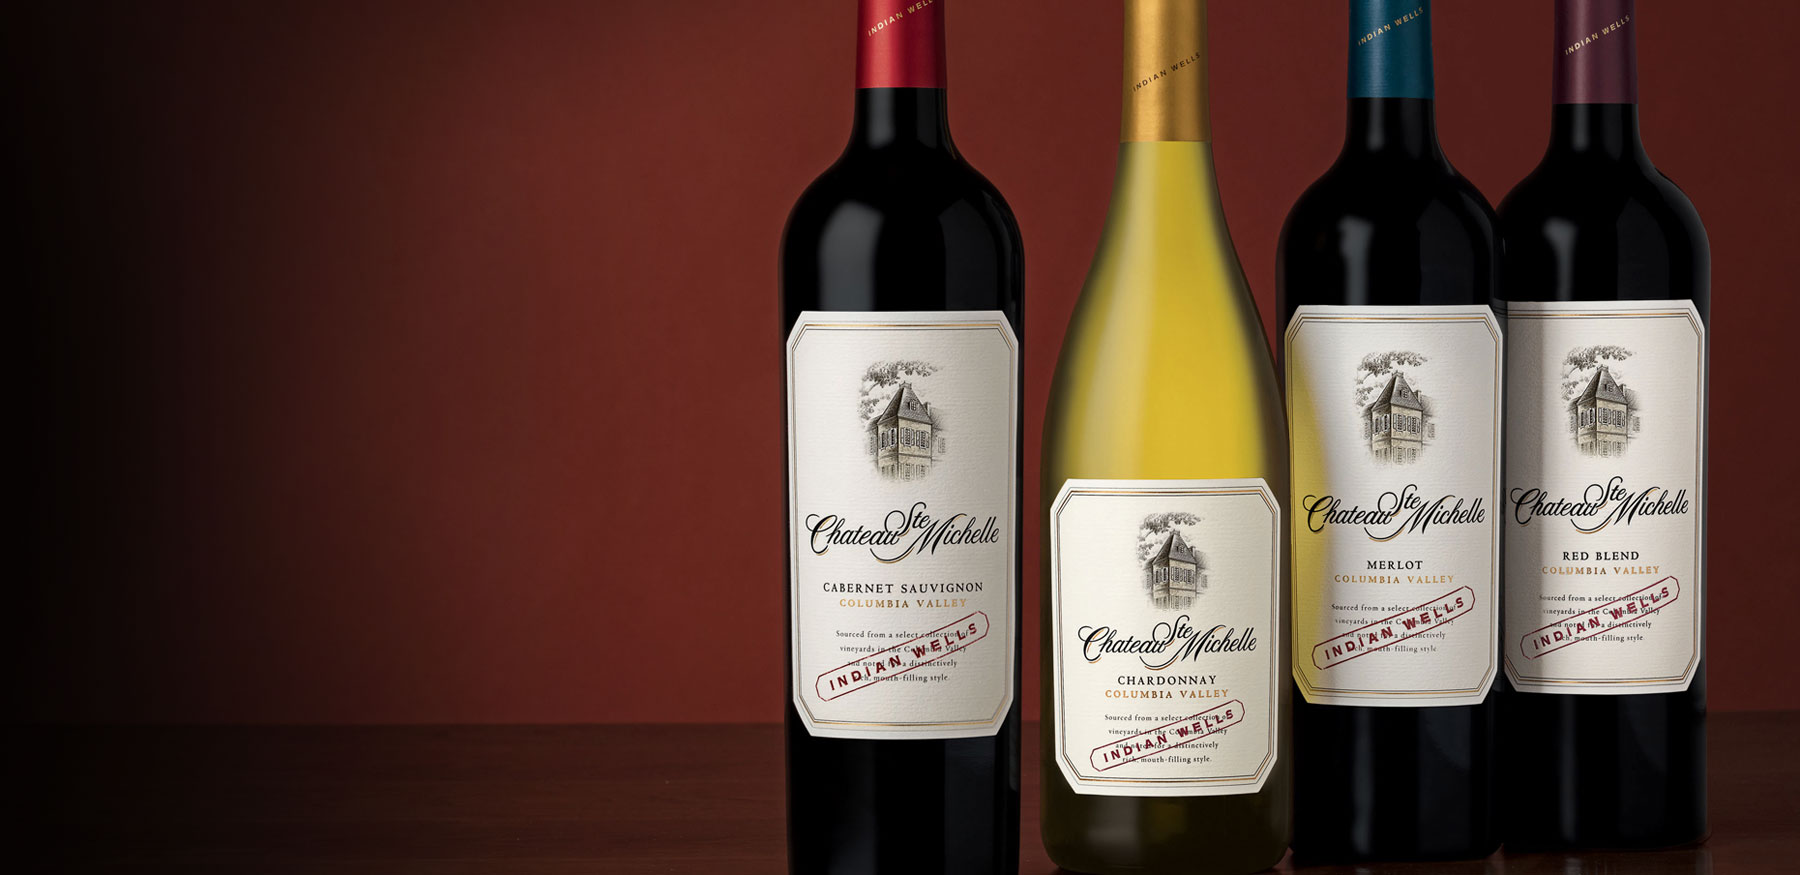 4 bottles of Indian Wells wines